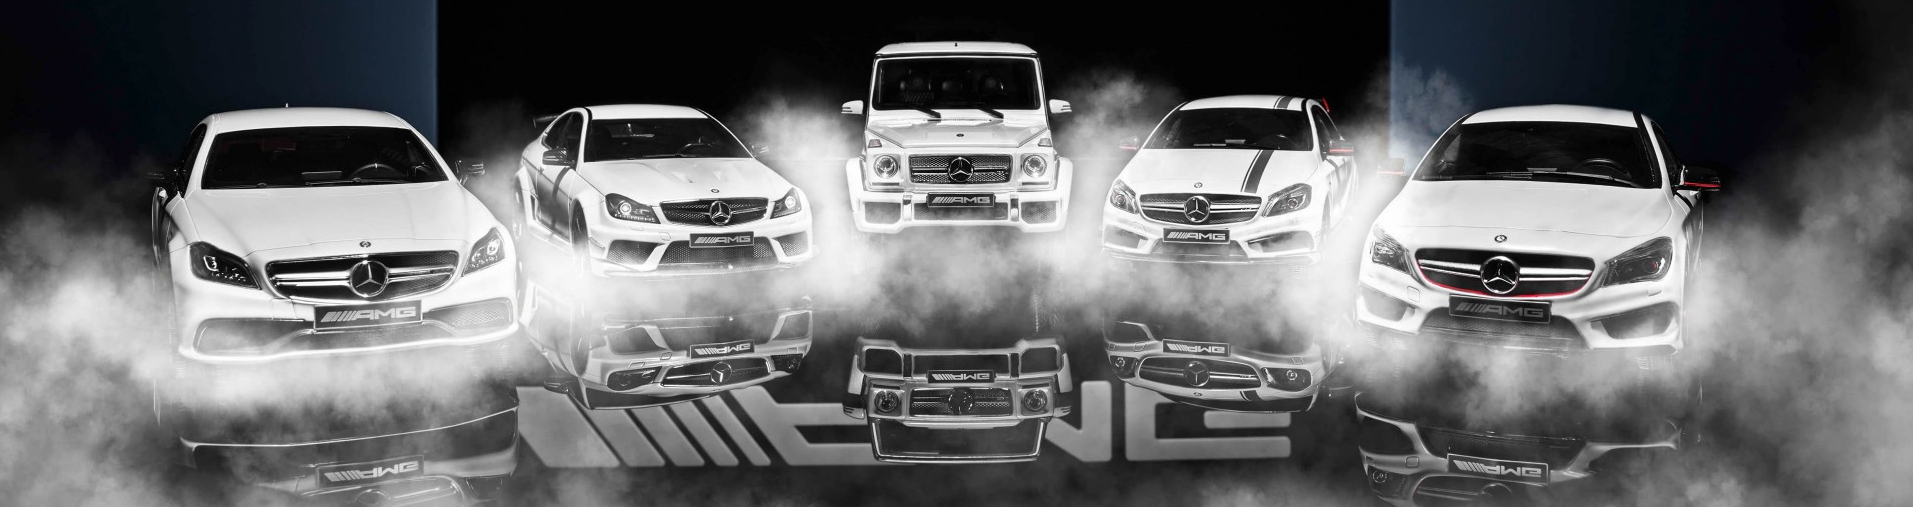 More good news has been reported from the luxury car market as Mercedes-Benz delivers over one million cars in the first half of 2016. Mercedes contributes their success to the newly-updated line of luxury SUVs that represent one-third of total sales for the German manufacturer. Growth for the year is up 12.1 percent over the same time in 2015. This marks 40 months in a row of record sales for Mercedes that is also expecting even more growth with the release of the Mercedes-AMG GT R.